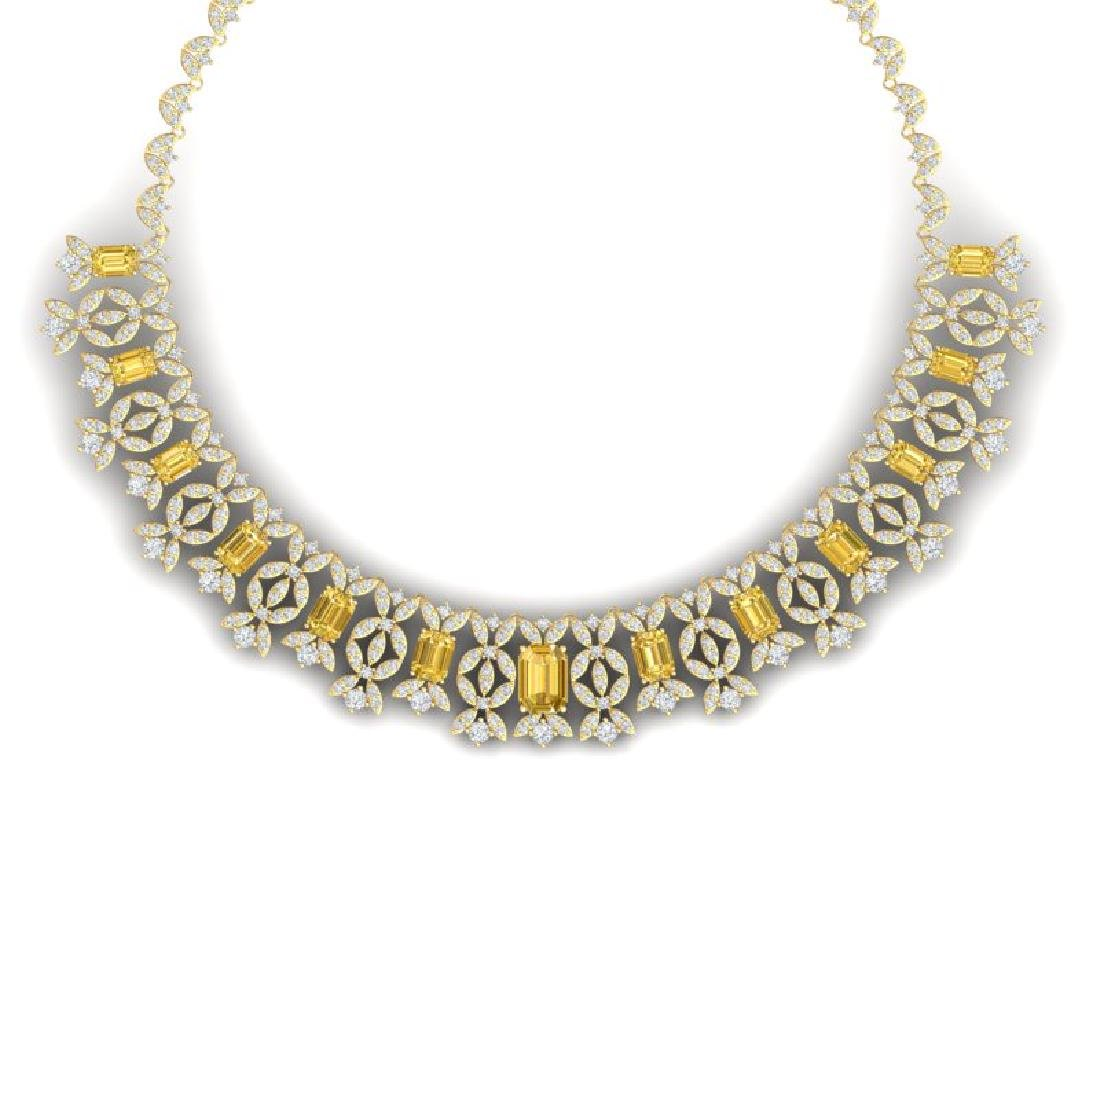 46.38 CTW Royalty Canary Citrine & VS Diamond Necklace